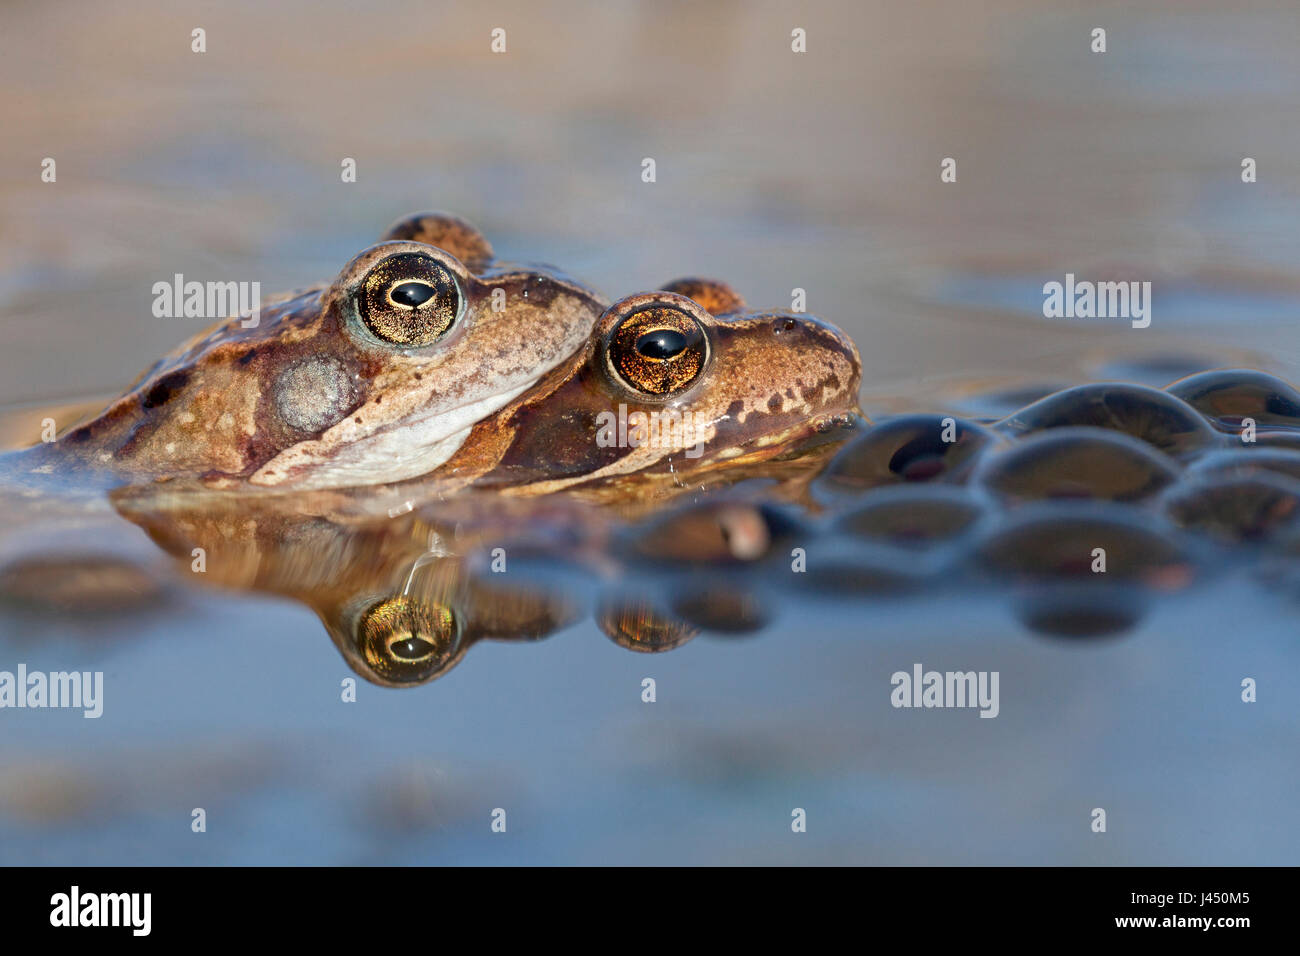 pair common frogs in the water between frog spawn - Stock Image